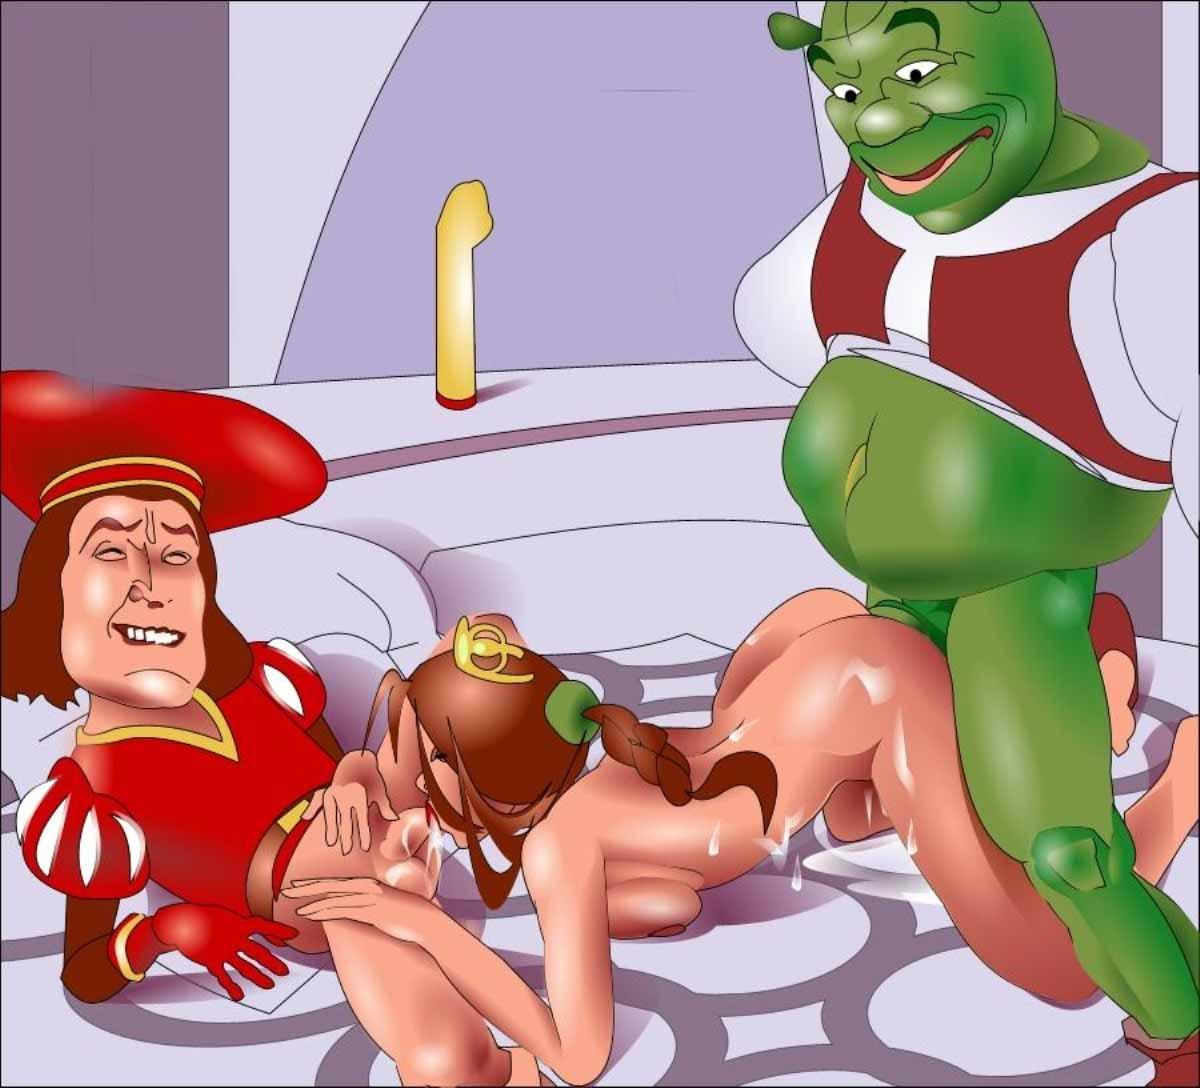 Shrek fuck girl erotic movie